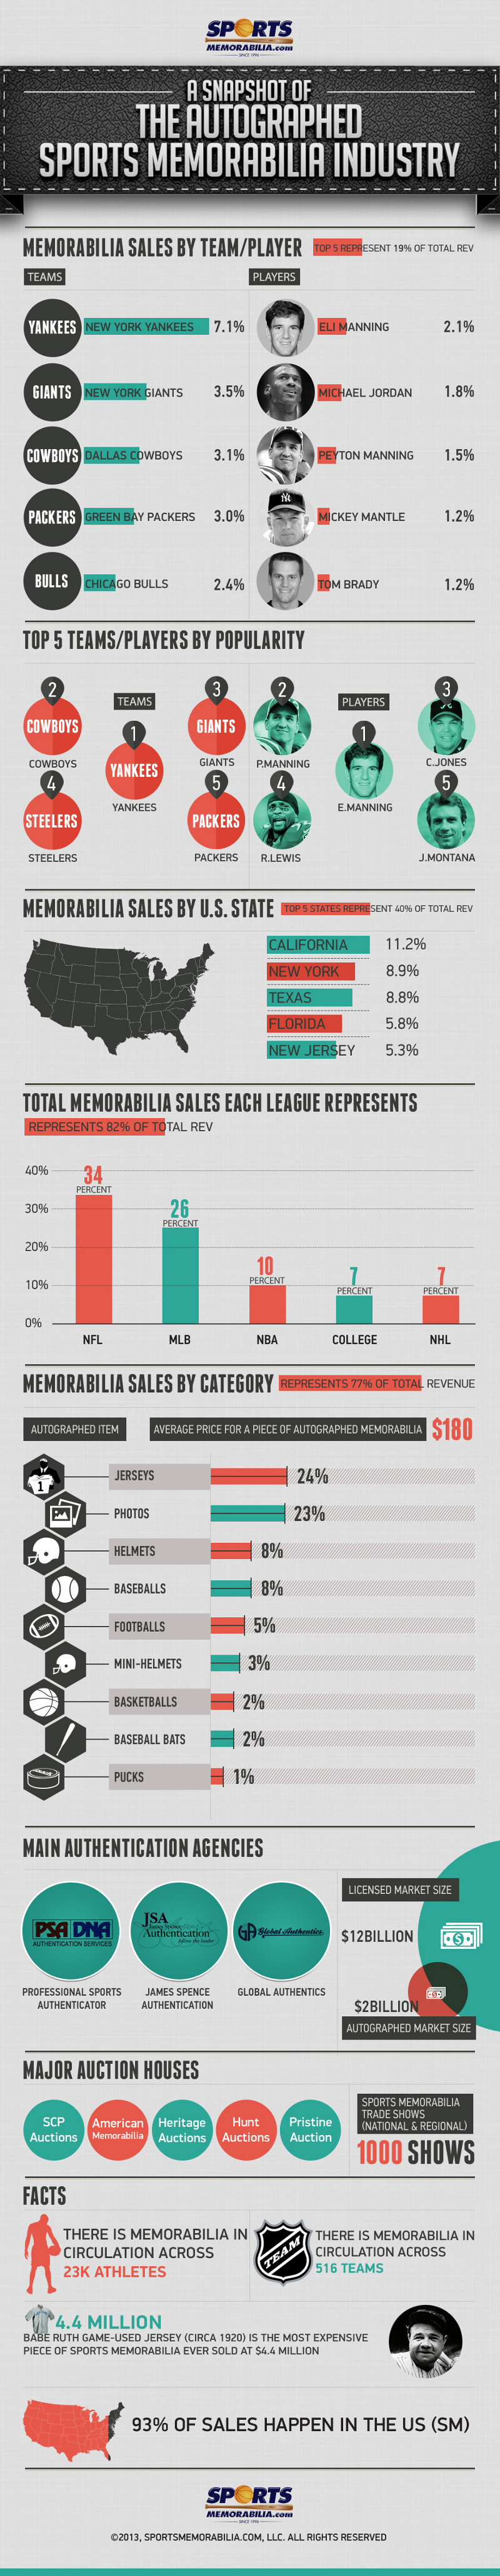 Statistics of Sports Memorabillia Industry